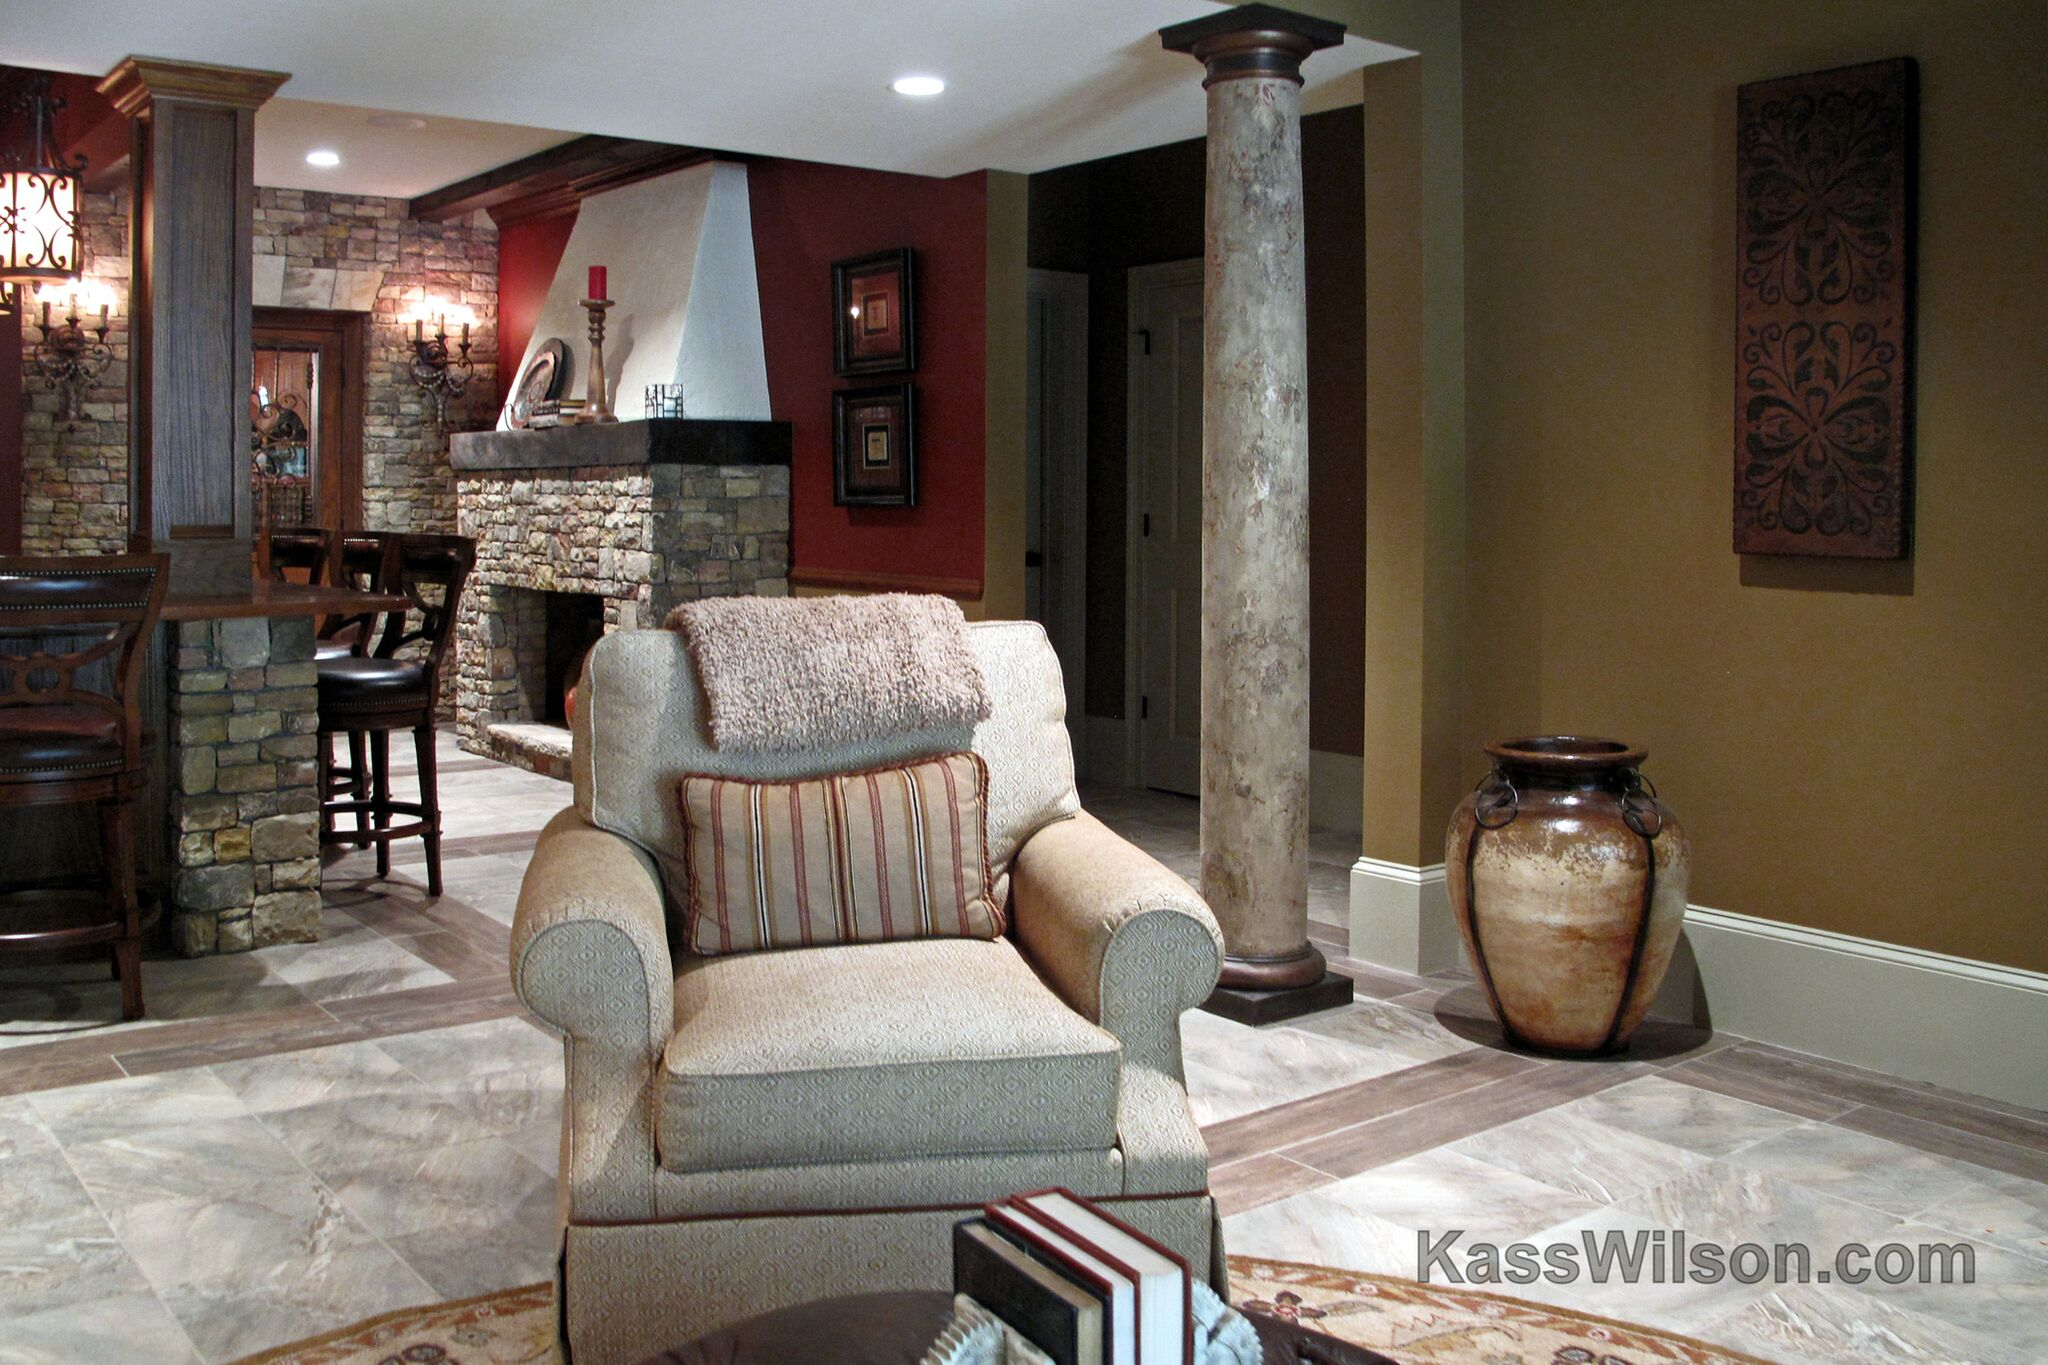 decorative painting in basement remodel